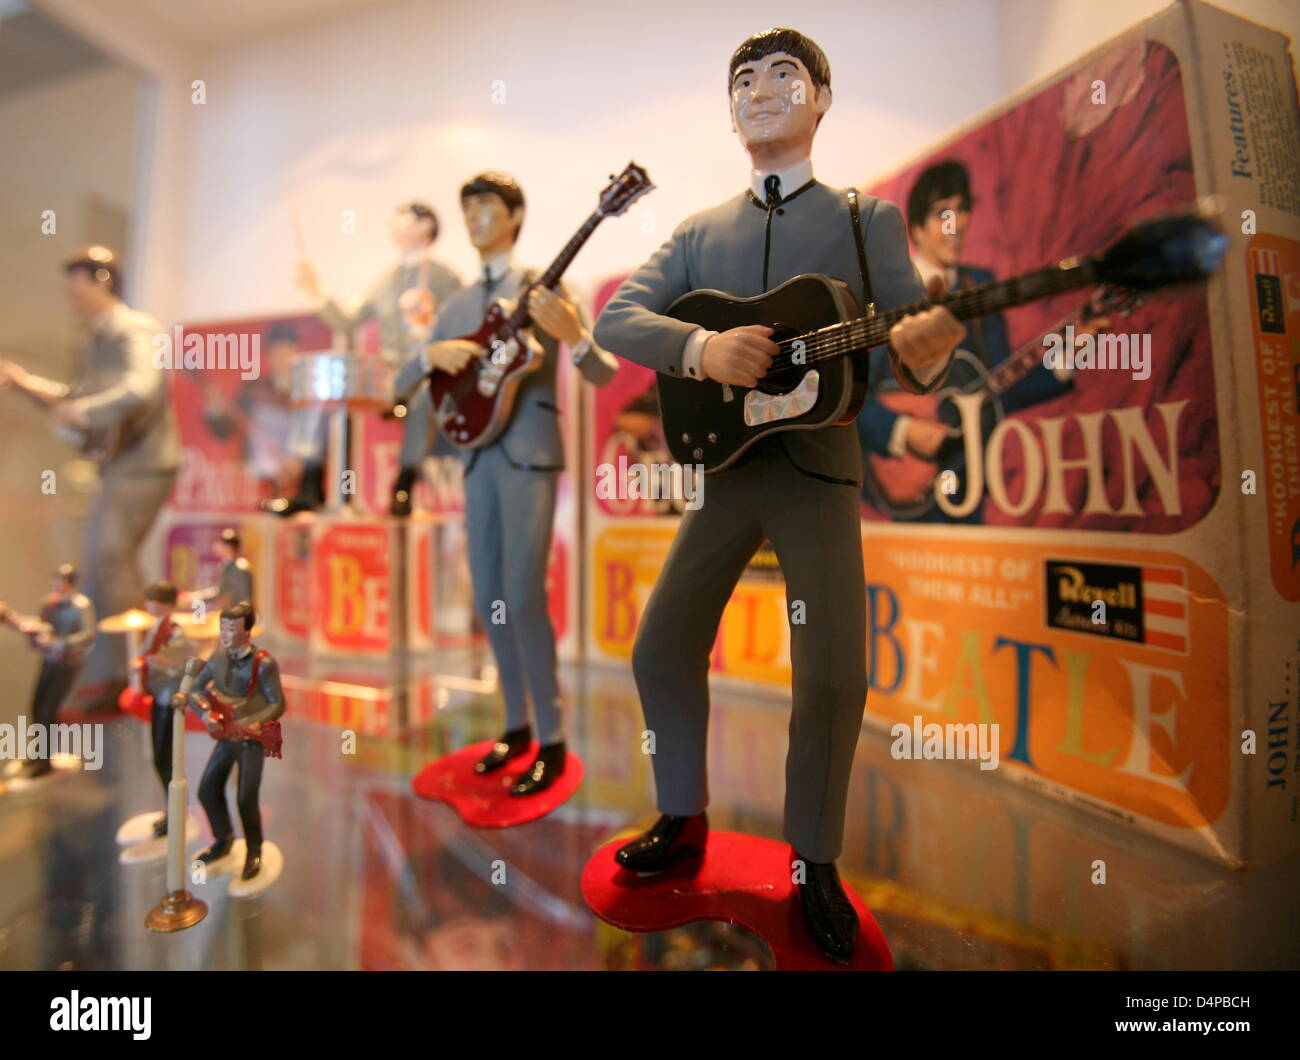 The Beatles as Revell dolls pictured in the exhibition halls of ?Beatlemania? in Hamburg, Germany, 28 May 2009. - Stock Image